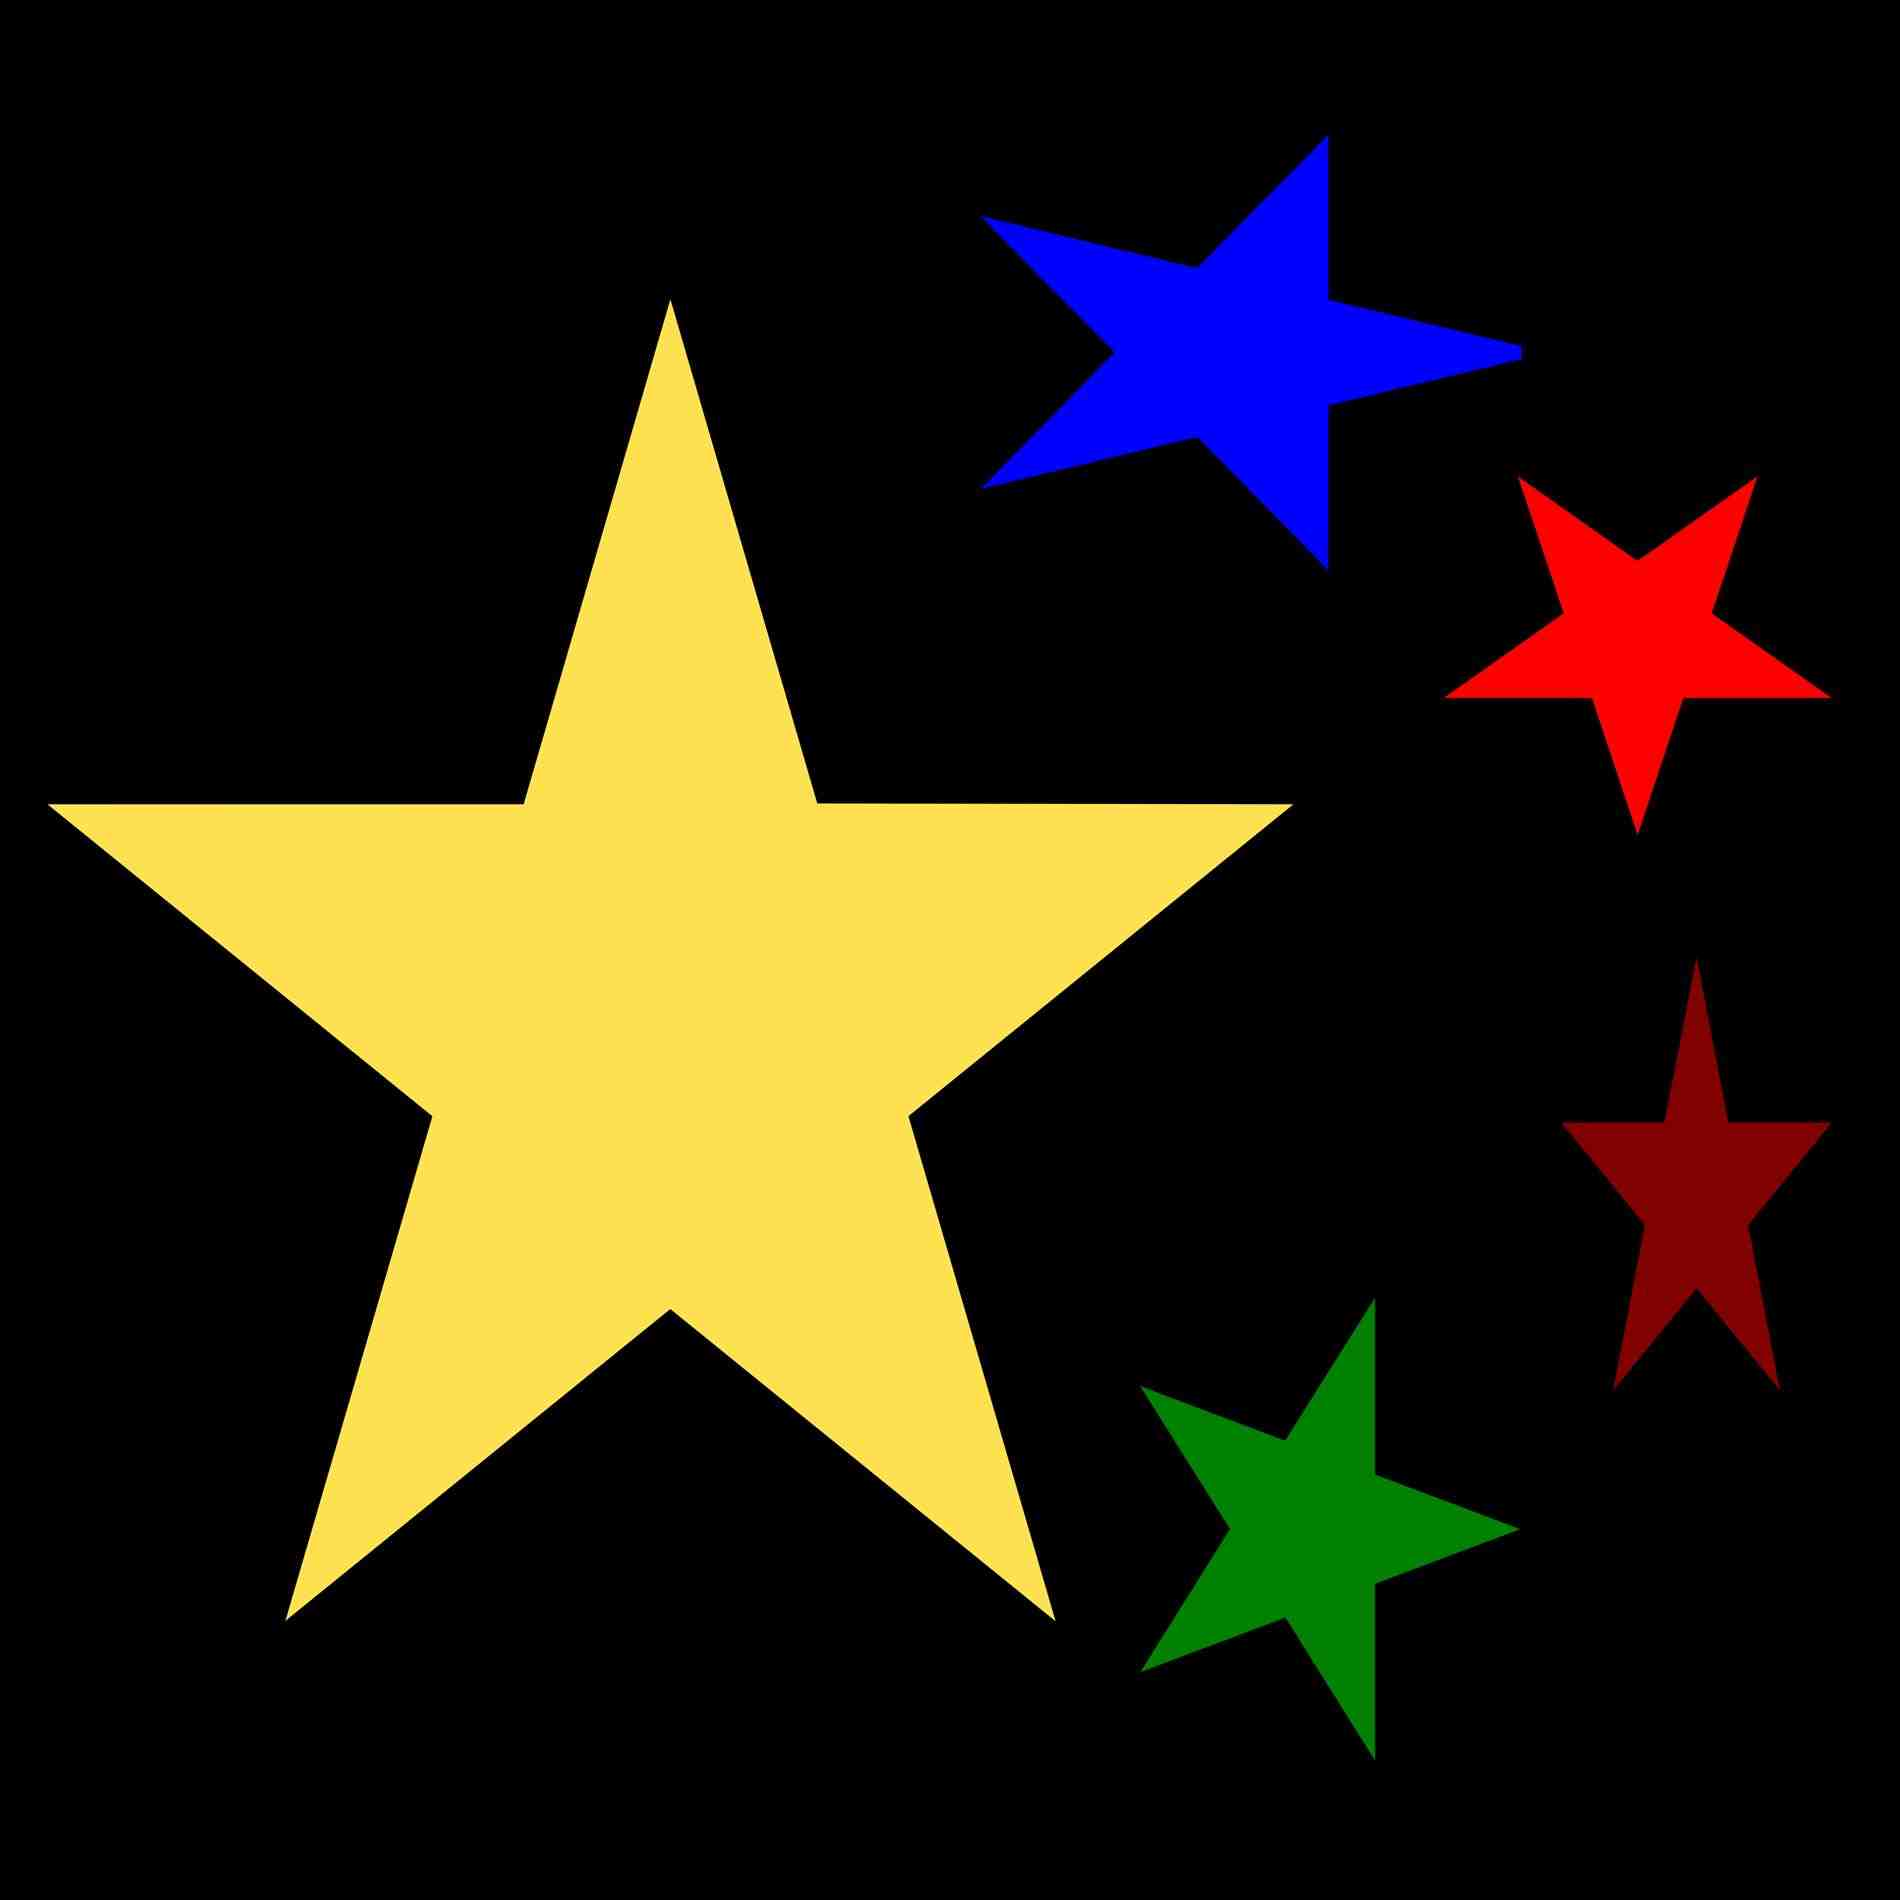 1900x1900 Christmas Star Border Images Cheminee.website